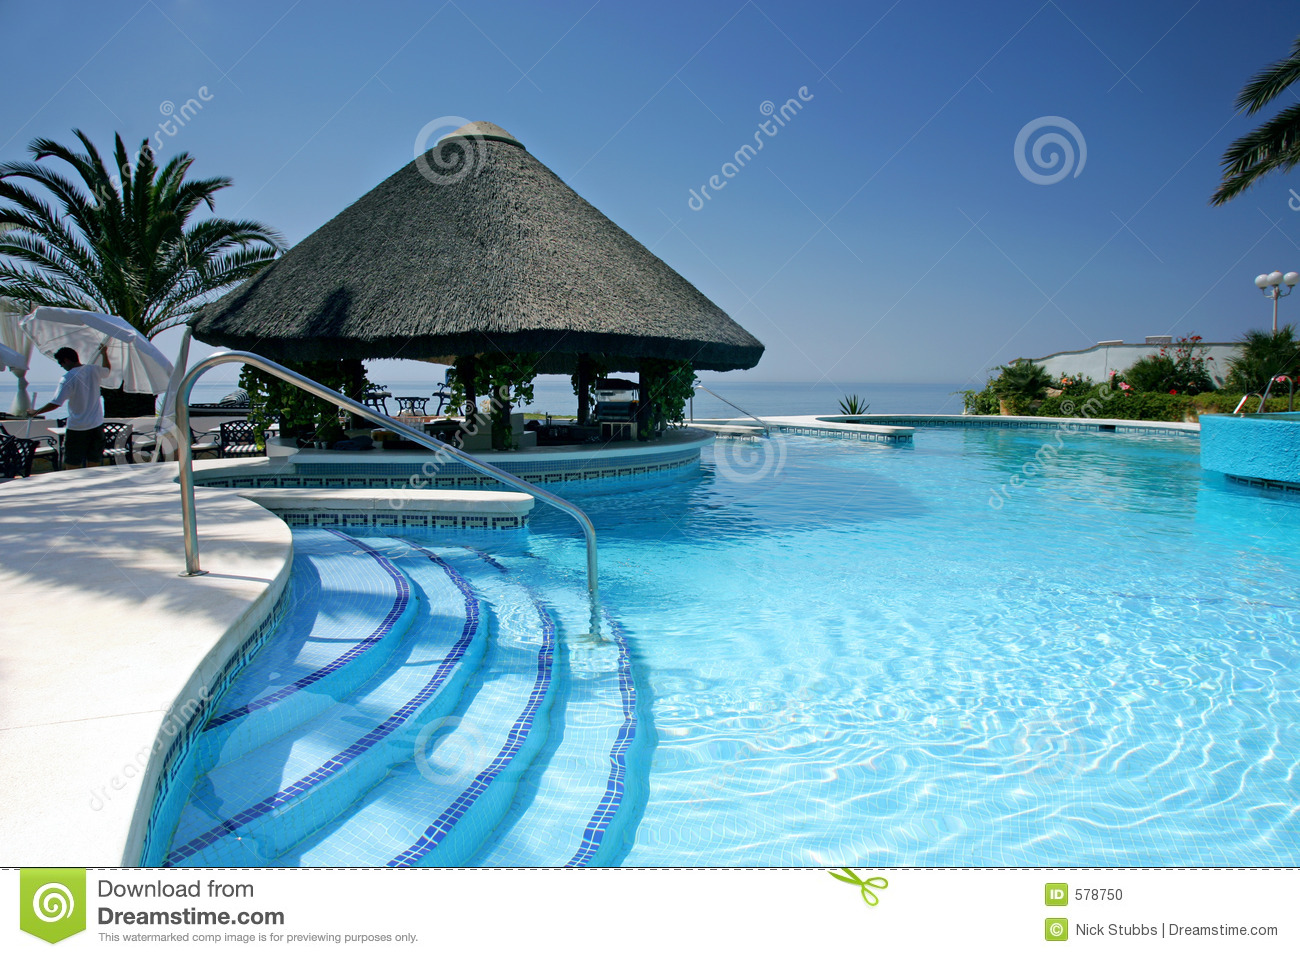 Tiki Hut And Bar By Swimming Pool Of Luxury Hotel Stock Photo Image 578750